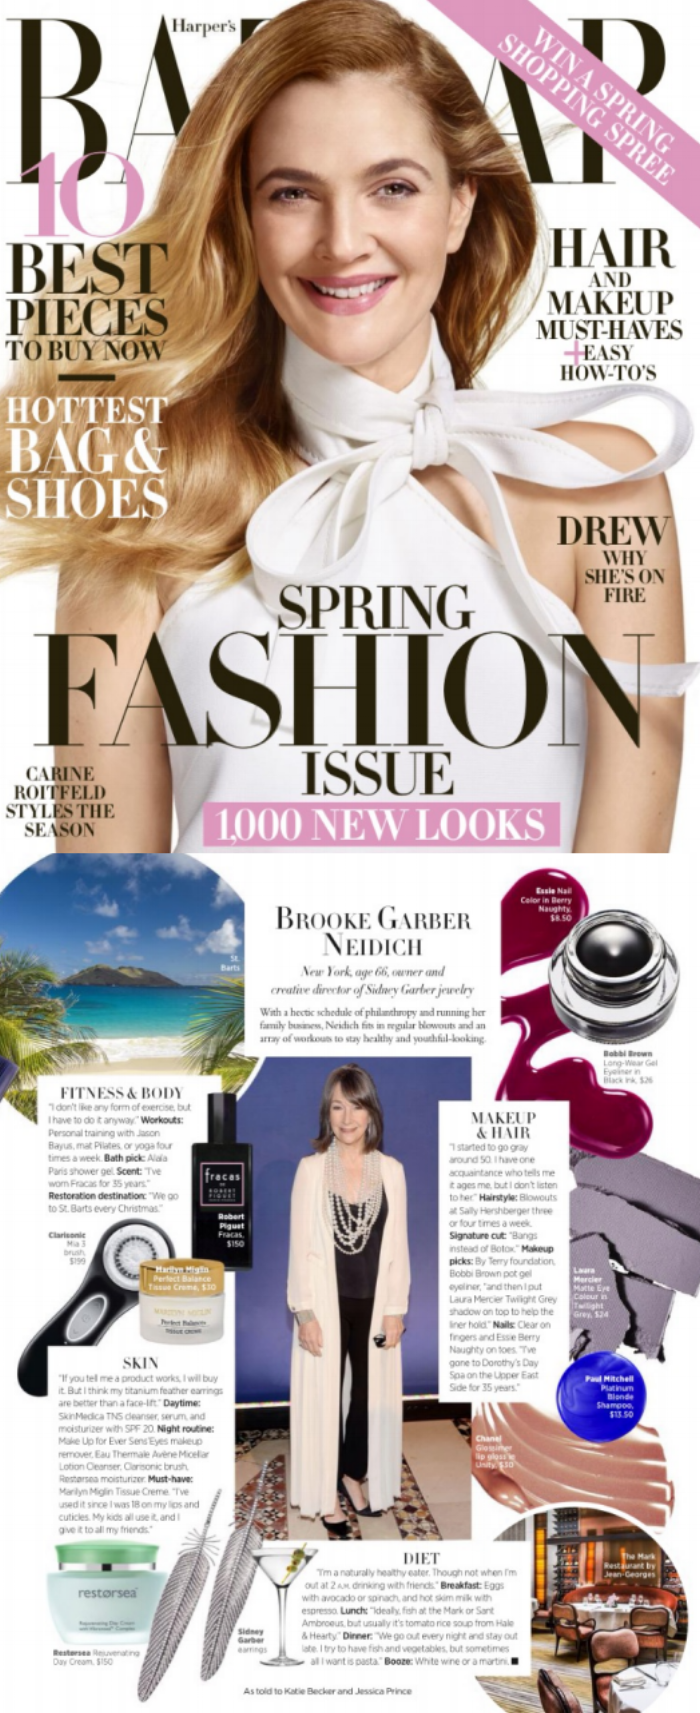 """Jason Bayus is featured in the March issue of Harper's Bazaar in an editorial titled, """"Brooke Garber Neidich."""""""